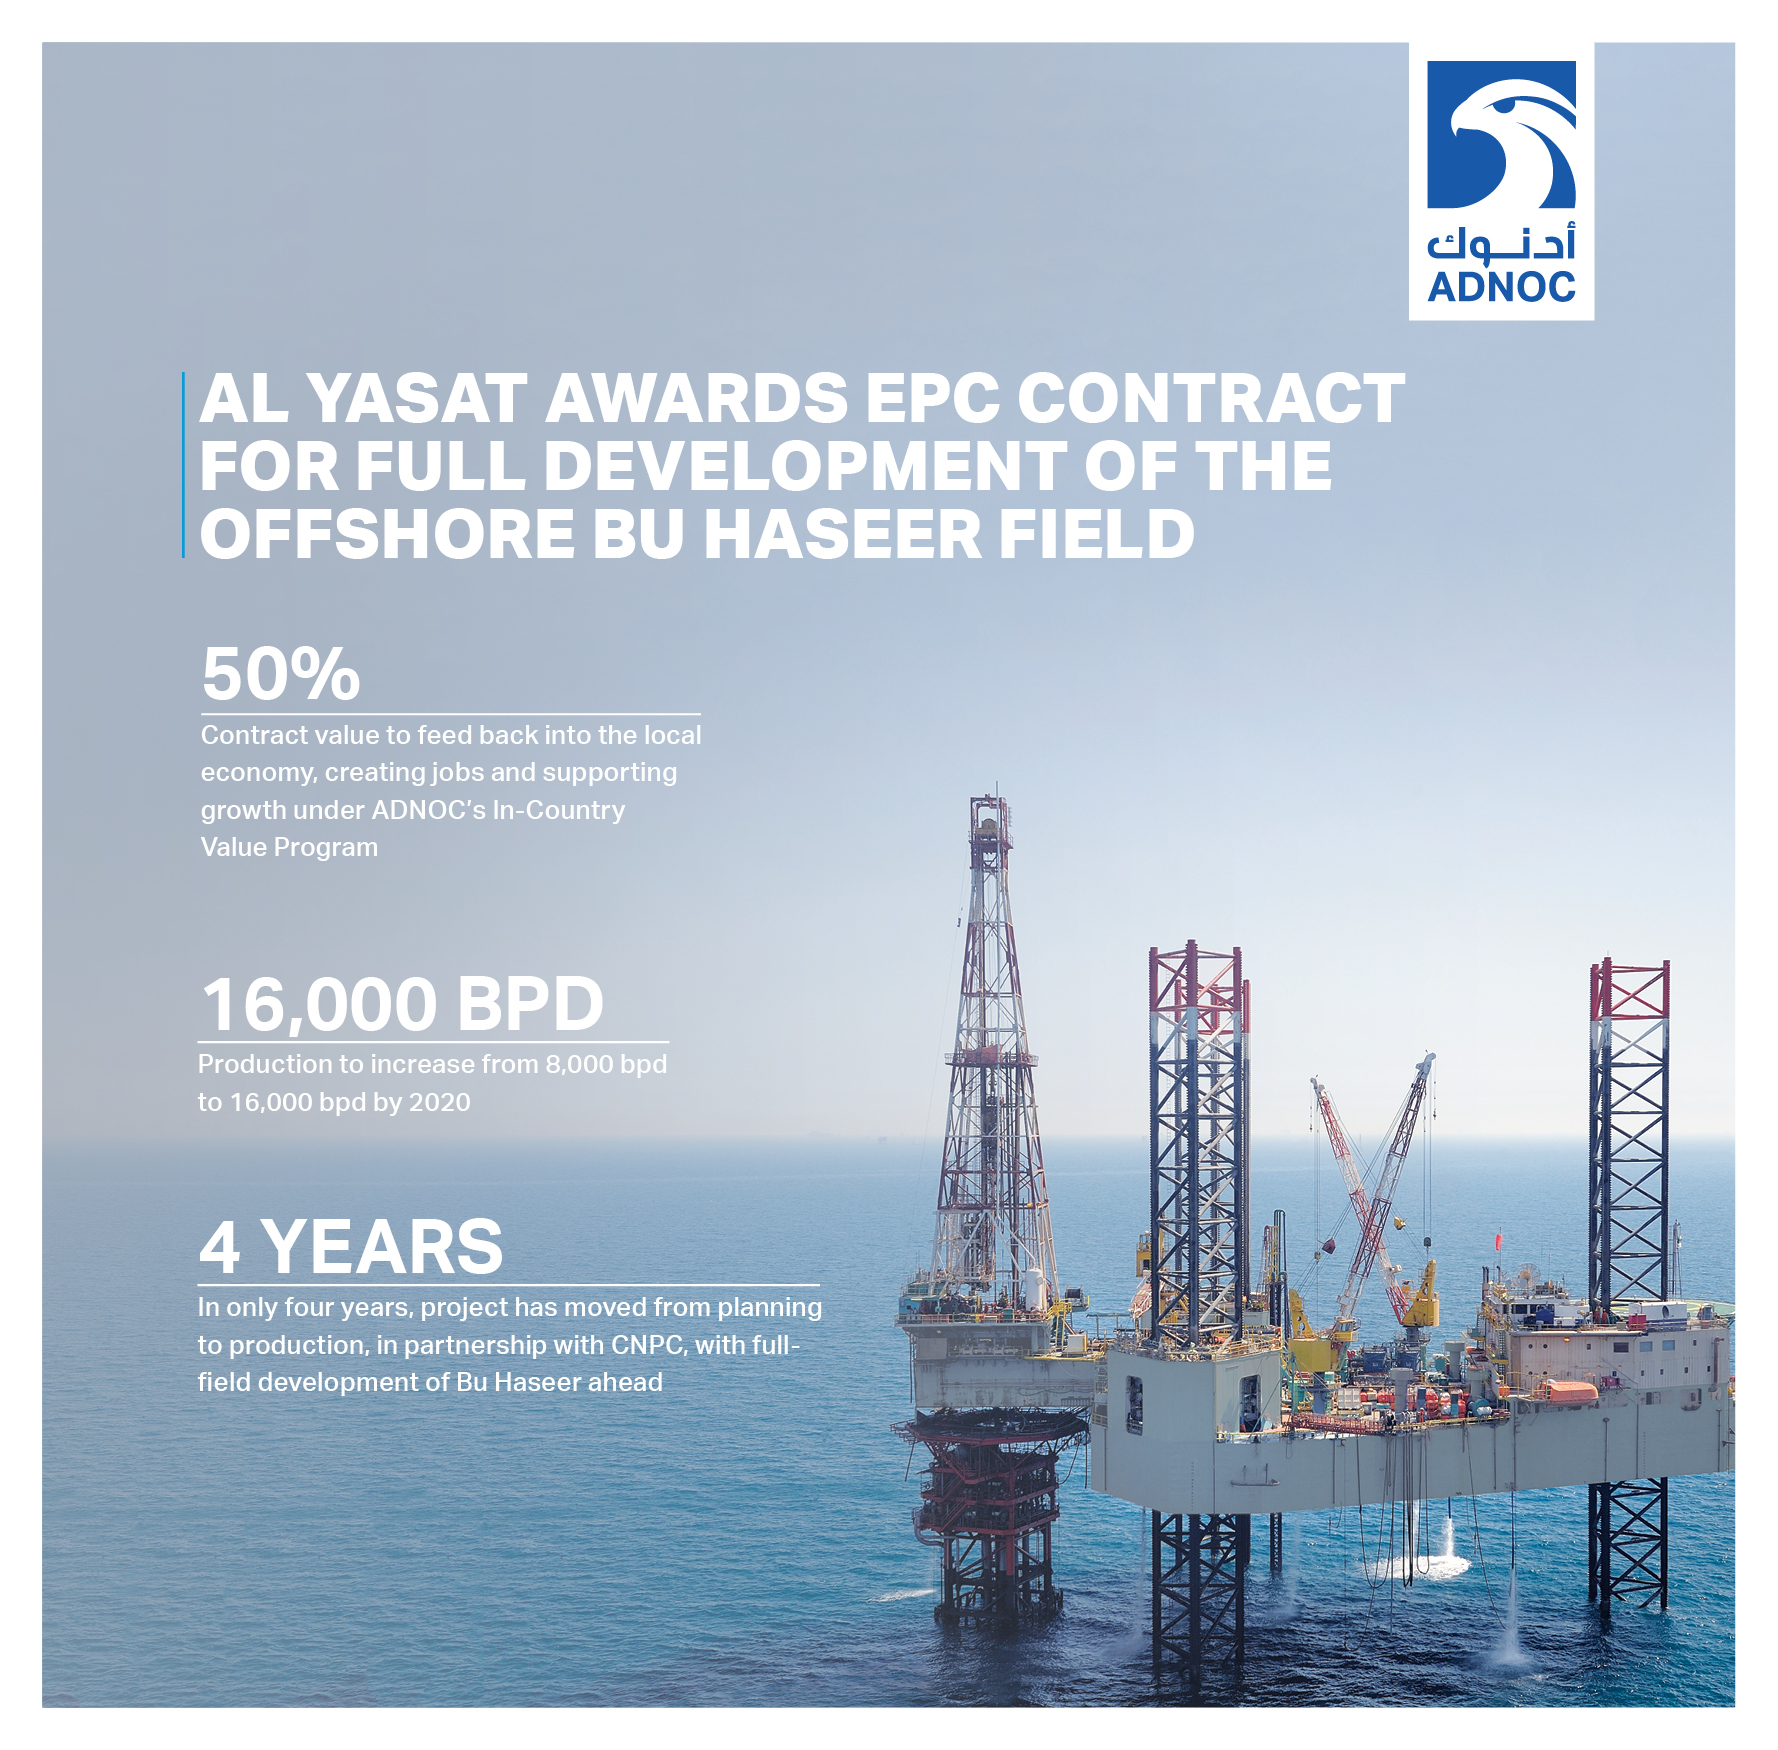 ADNOC's Al Yasat awards EPC contract of Bu Haseer field to NPCC